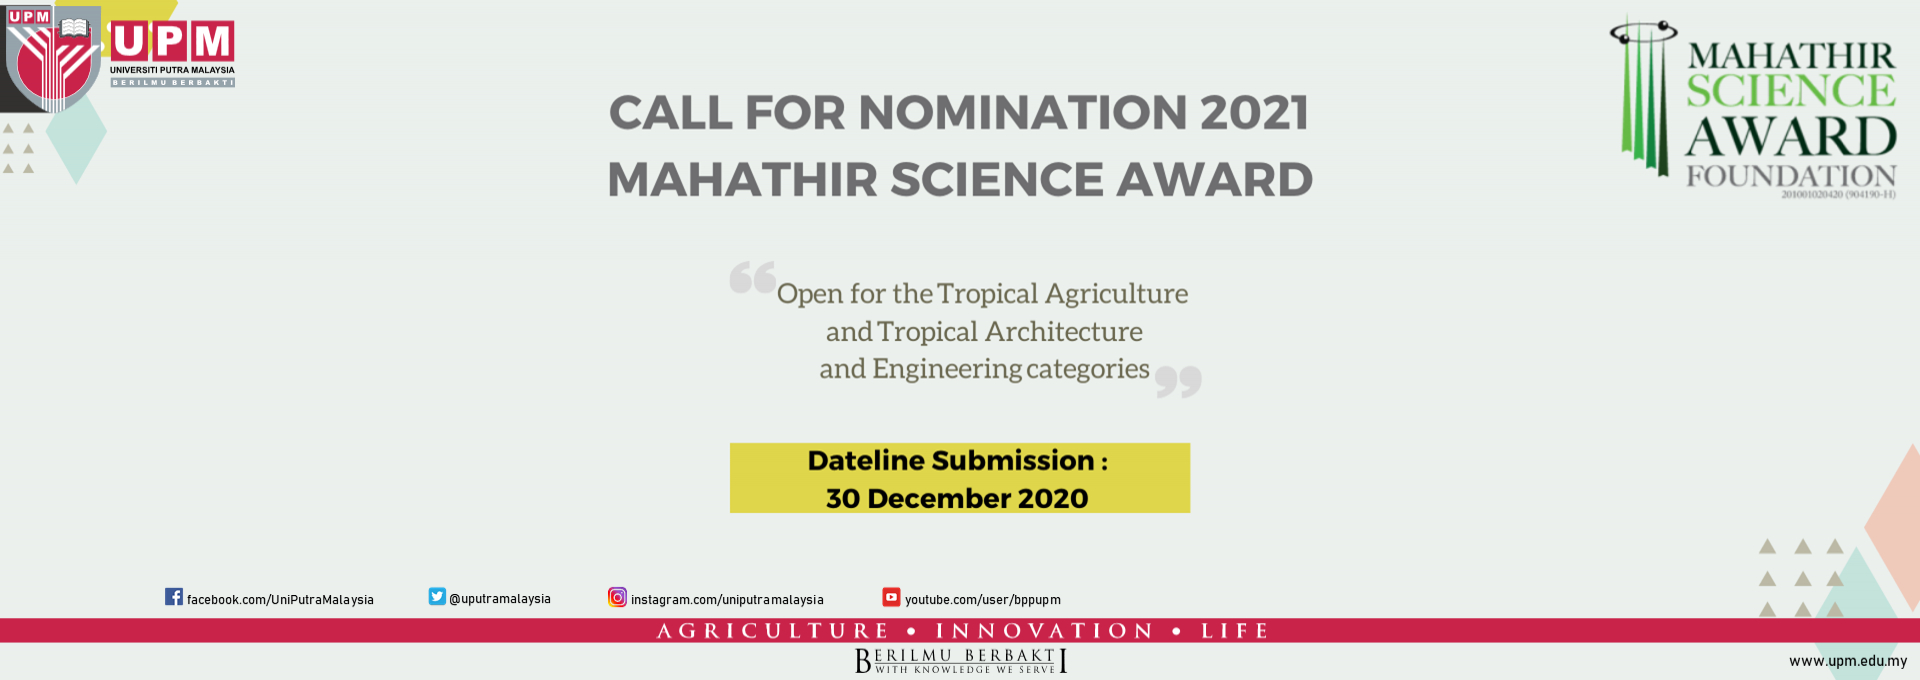 CALL FOR NOMINATION 2021 MAHATHIR SCIENCE AWARD